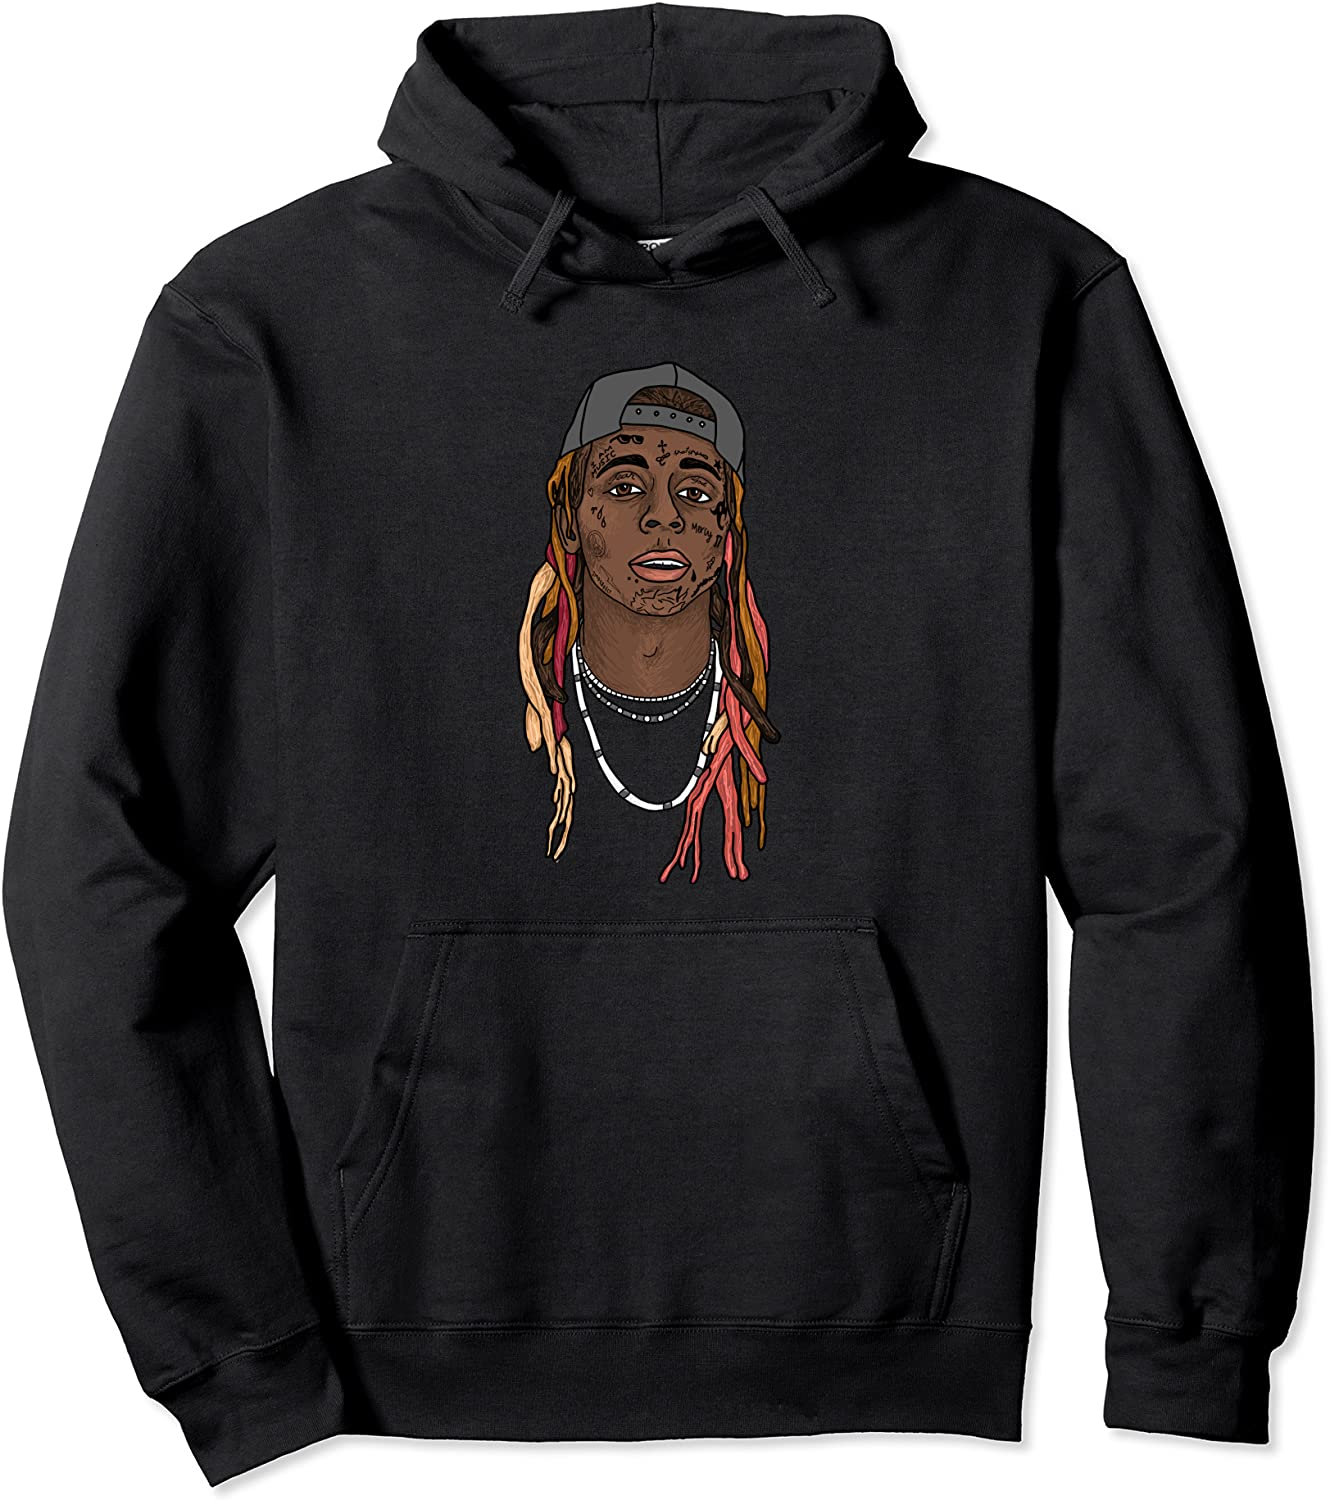 Lil Wayne Illustrated Hoodie Face 70% OFF Outlet Nippon regular agency Pullover